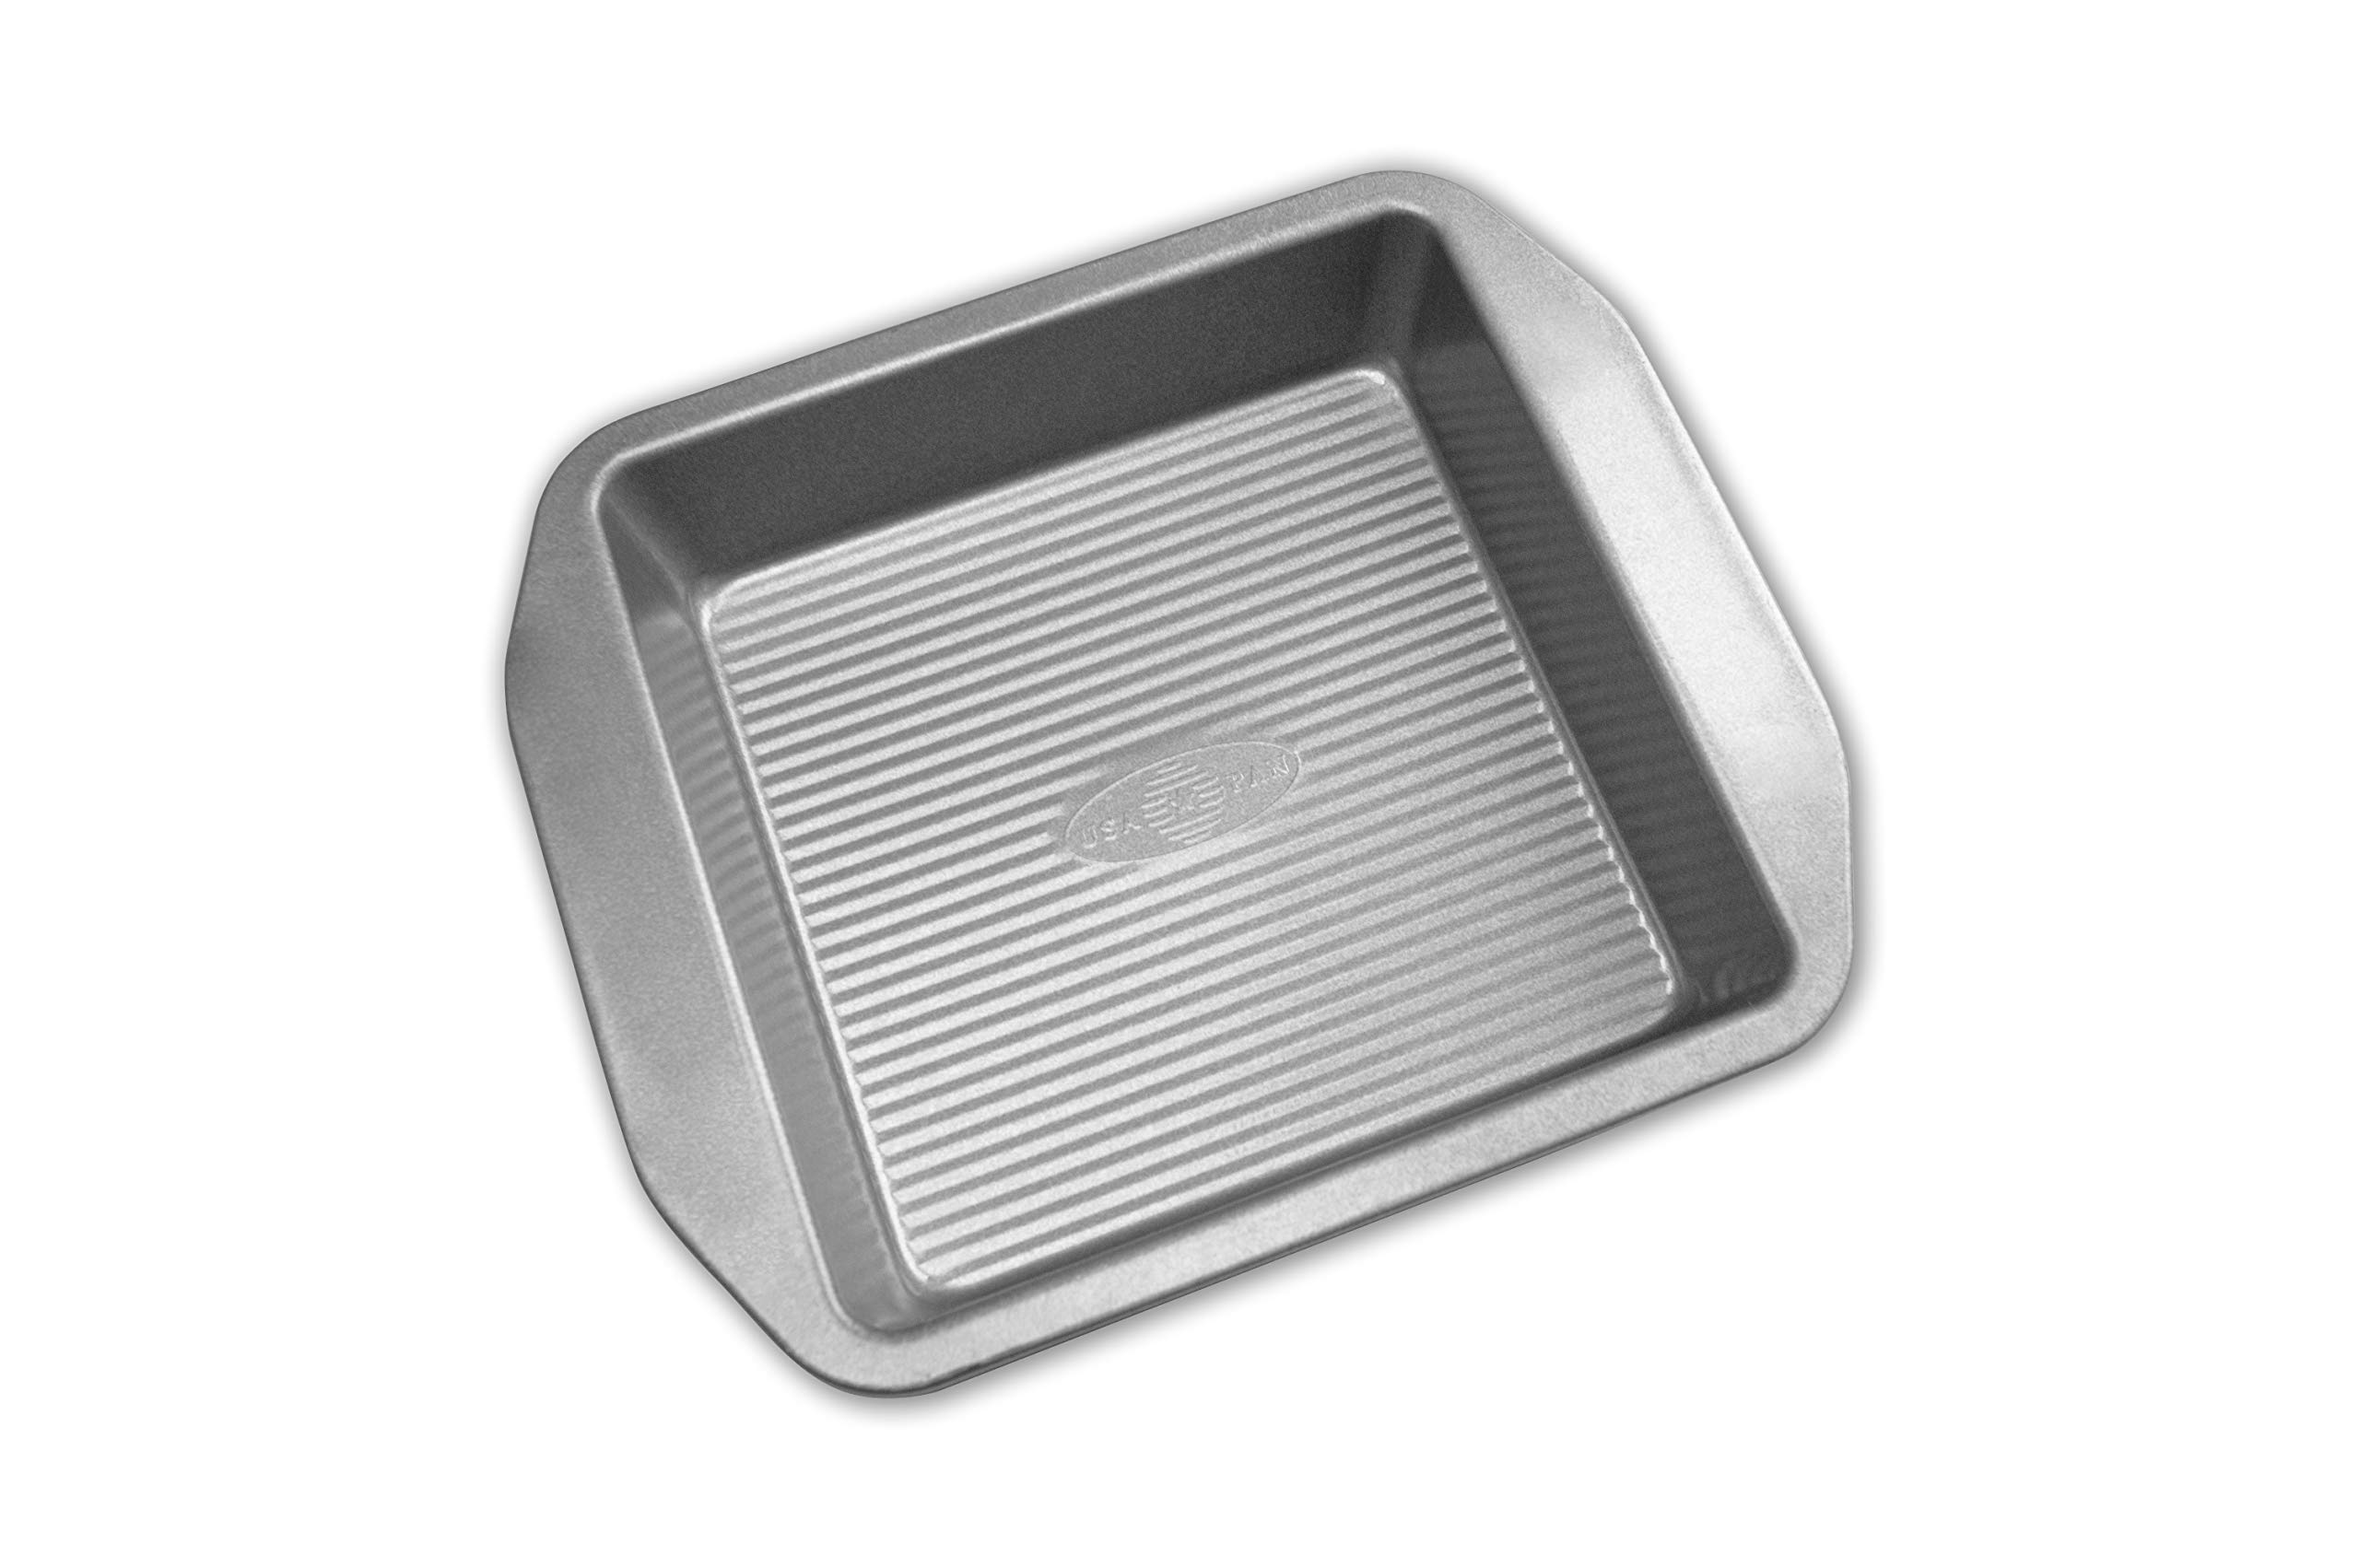 USA Pan 1120BW-3-ABC American Bakeware Classics 8-Inch Square Cake and Brownie Pan, Aluminized Steel by USA Pan